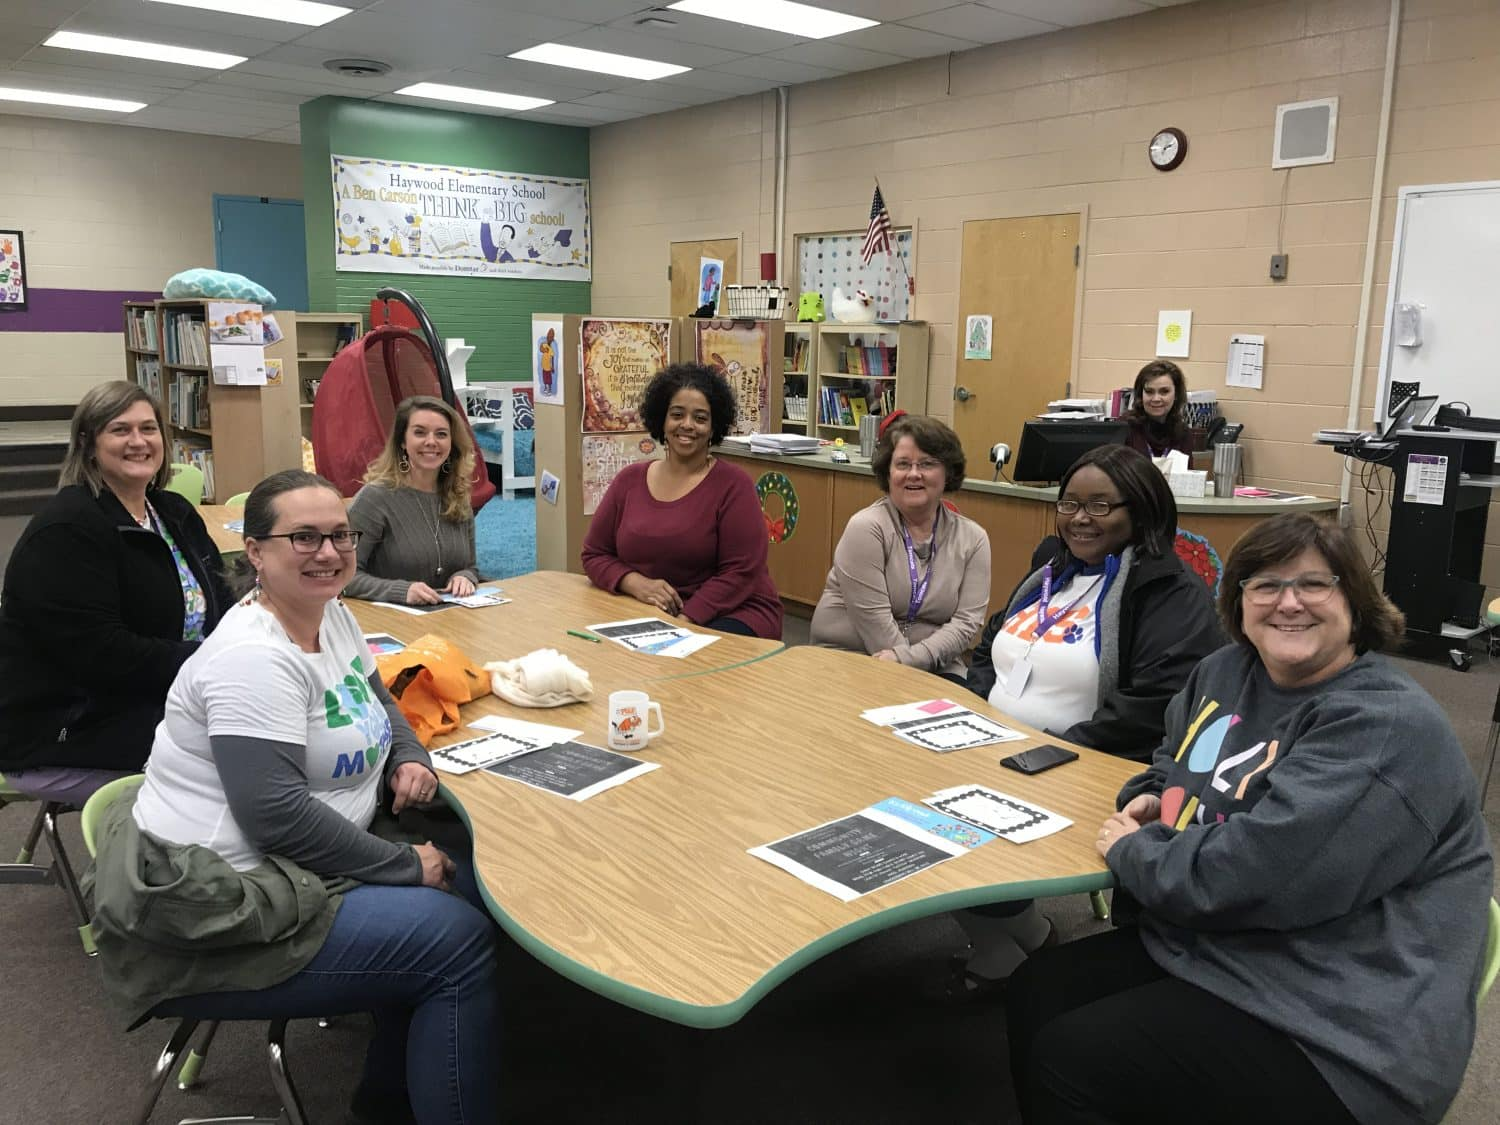 PAWS-sitively Proactive Parent Meeting